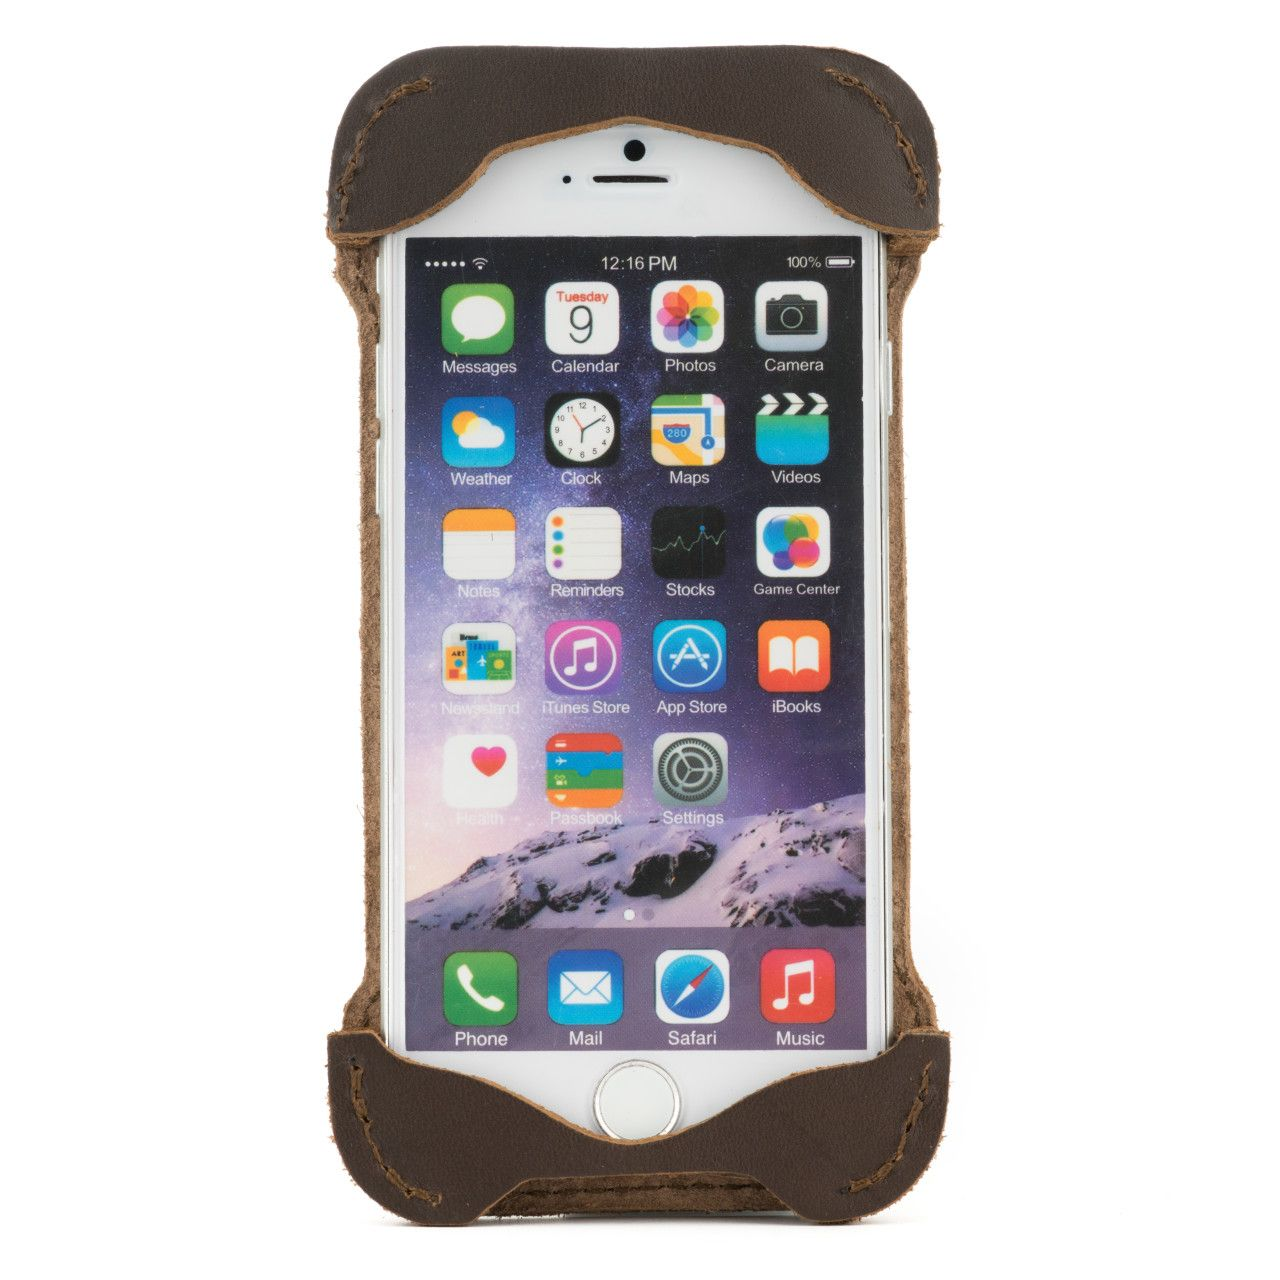 Iphone in iphone 6 leather case small in dark coffee brown leather